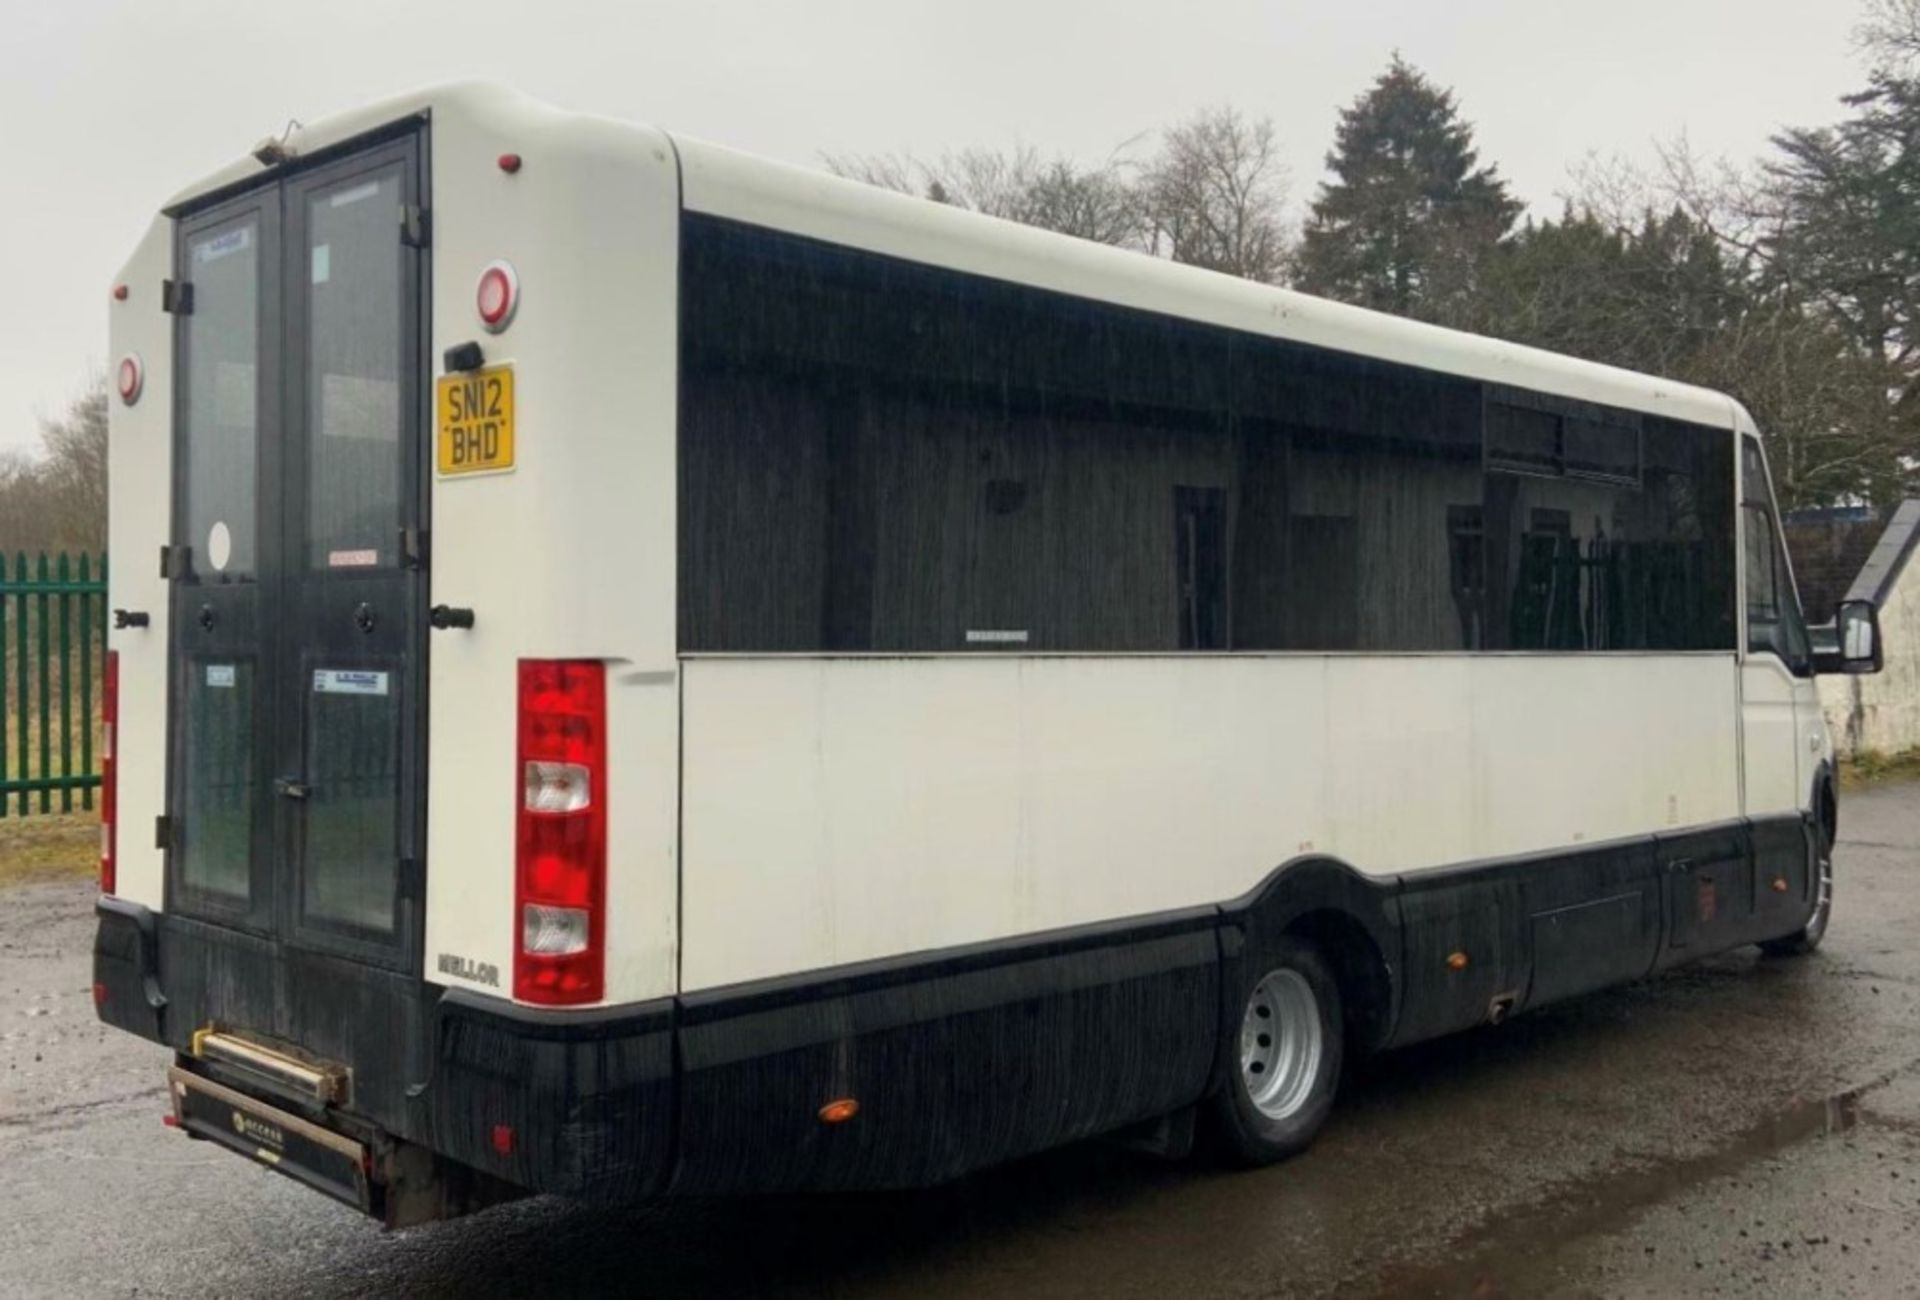 12 reg IRIS DAILY 65C17 MELLOR 11 SEAT BUS (LOCATION DUMFRIES) 1ST REG 05/12, 131454KM [+ VAT] - Image 4 of 6